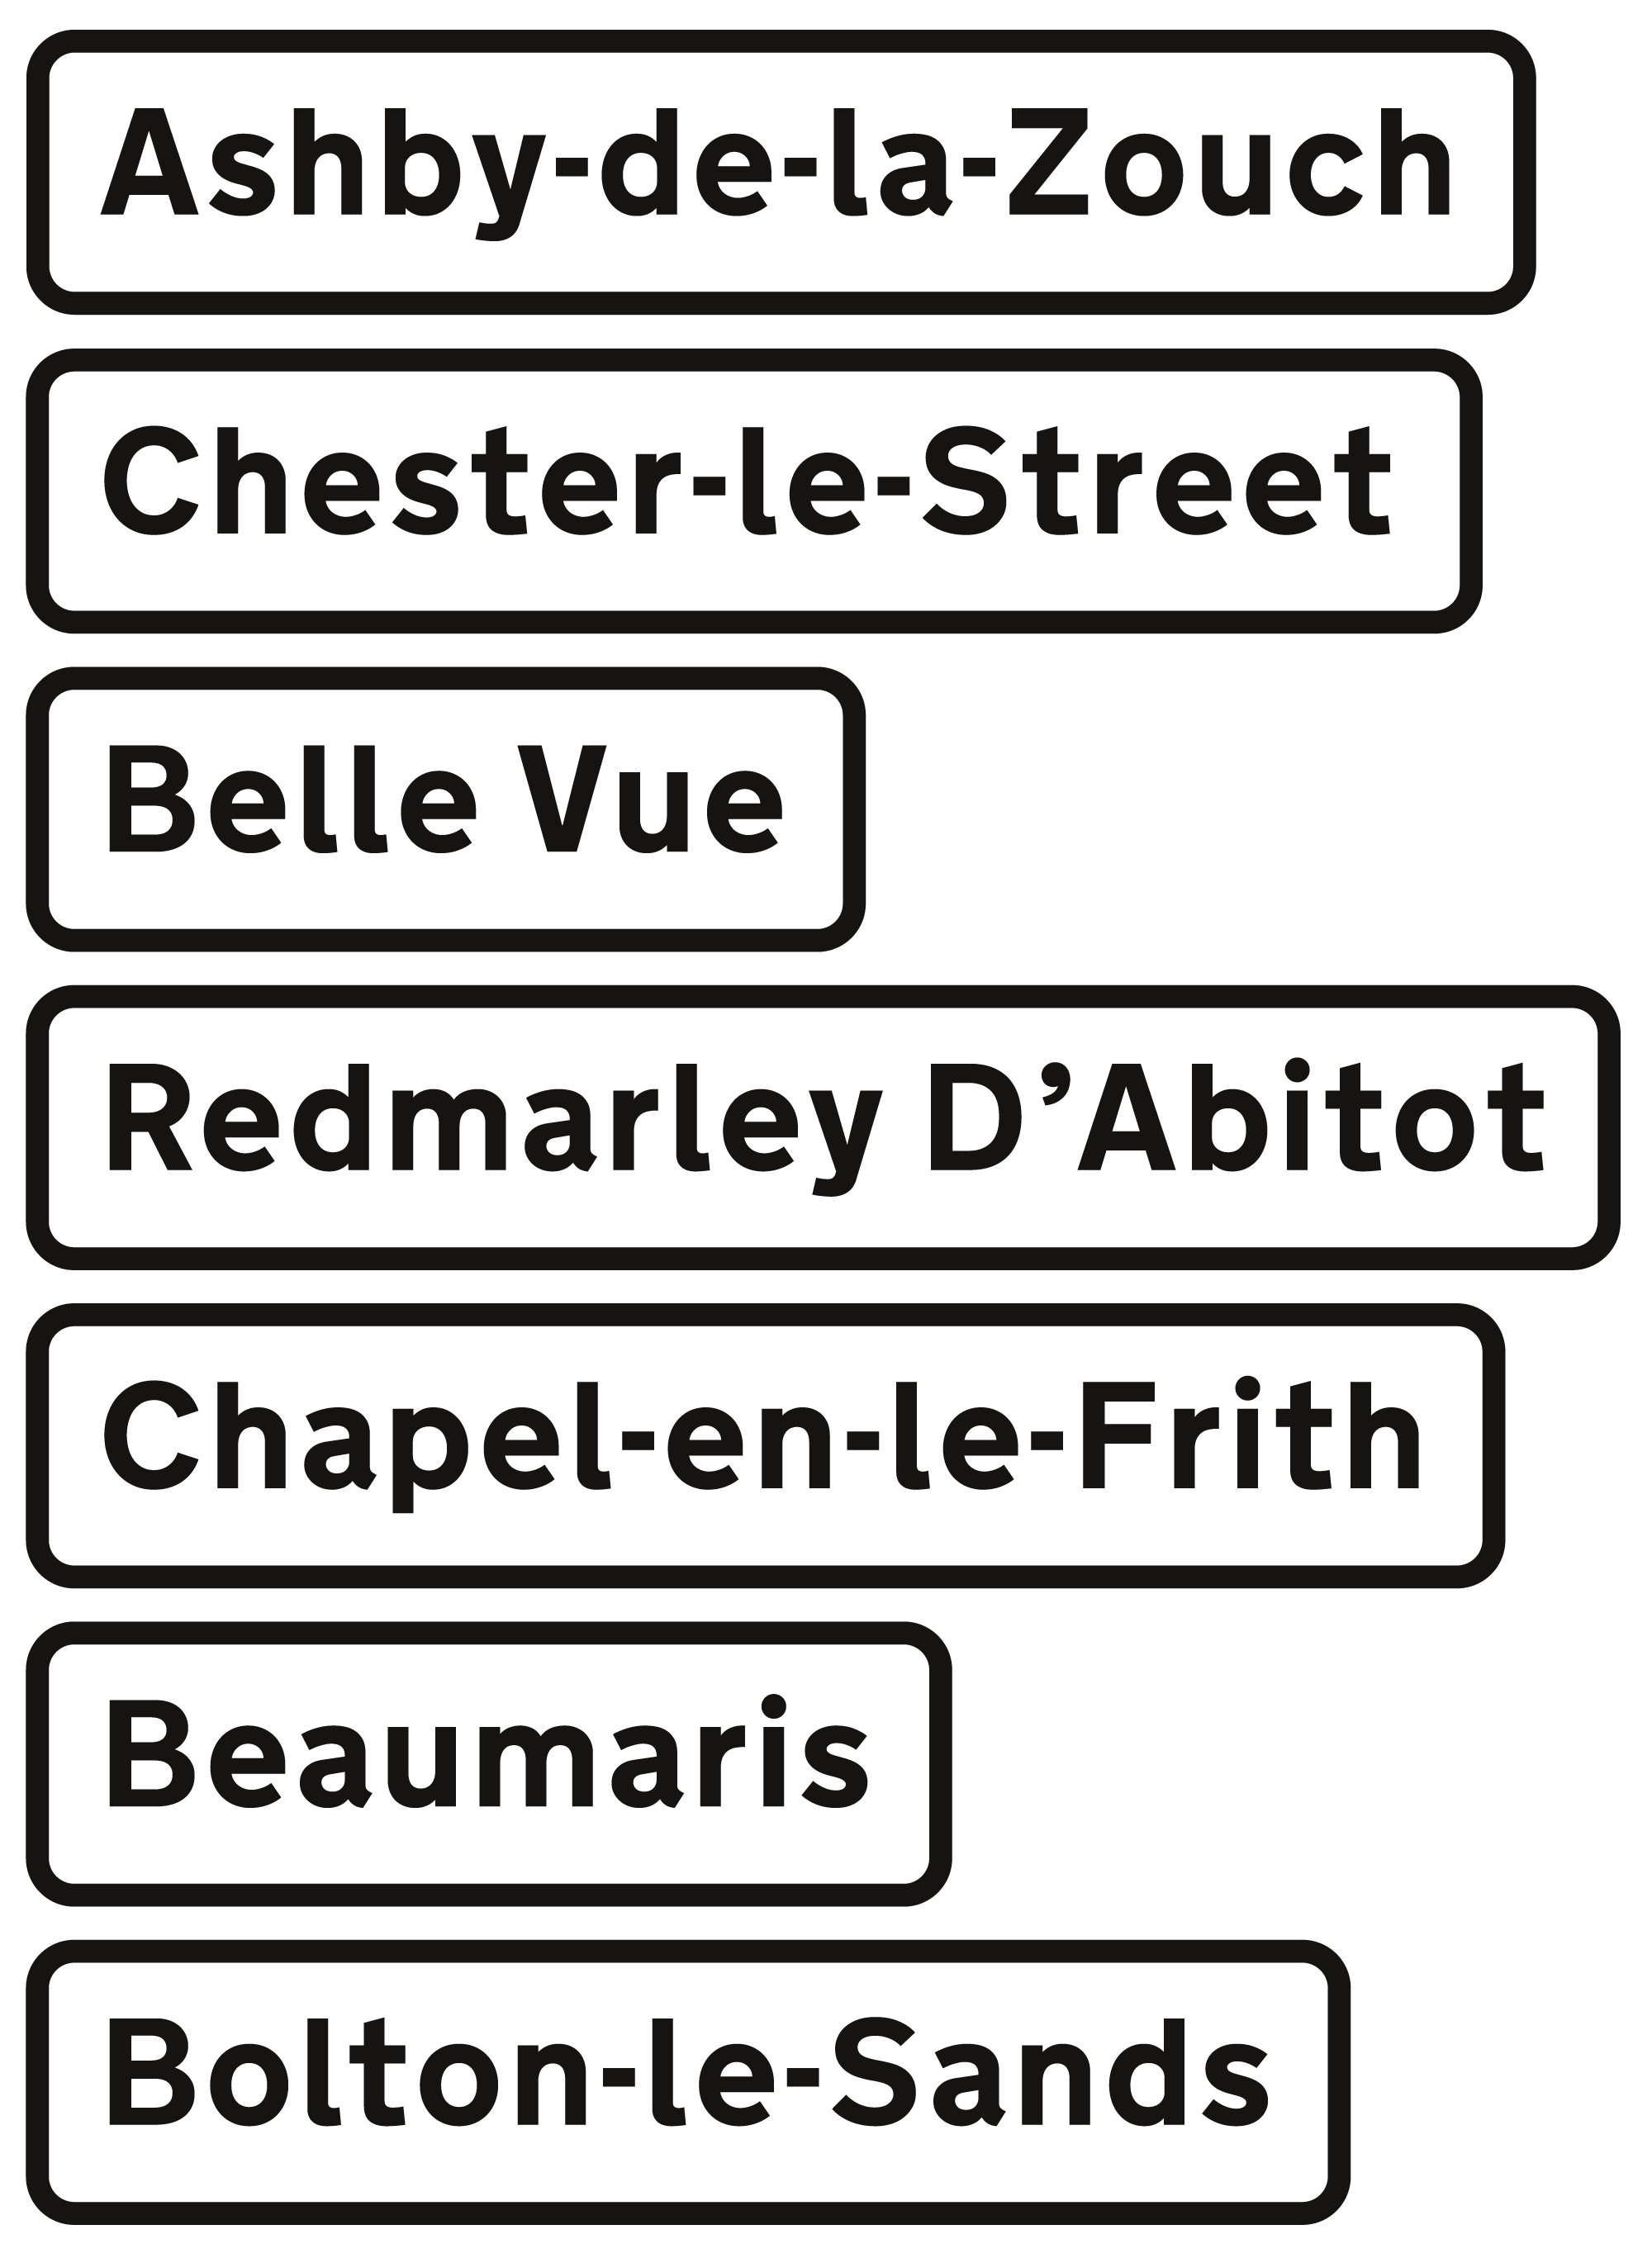 Black and white British road signs showing the names of the following places: Ashby-de-la-Zouche, Chester-le-Street, Belle Vue, Redmarley D'Abitot, Chapel-en-le-Frith, Beaumaris and Bolton-le-Sands